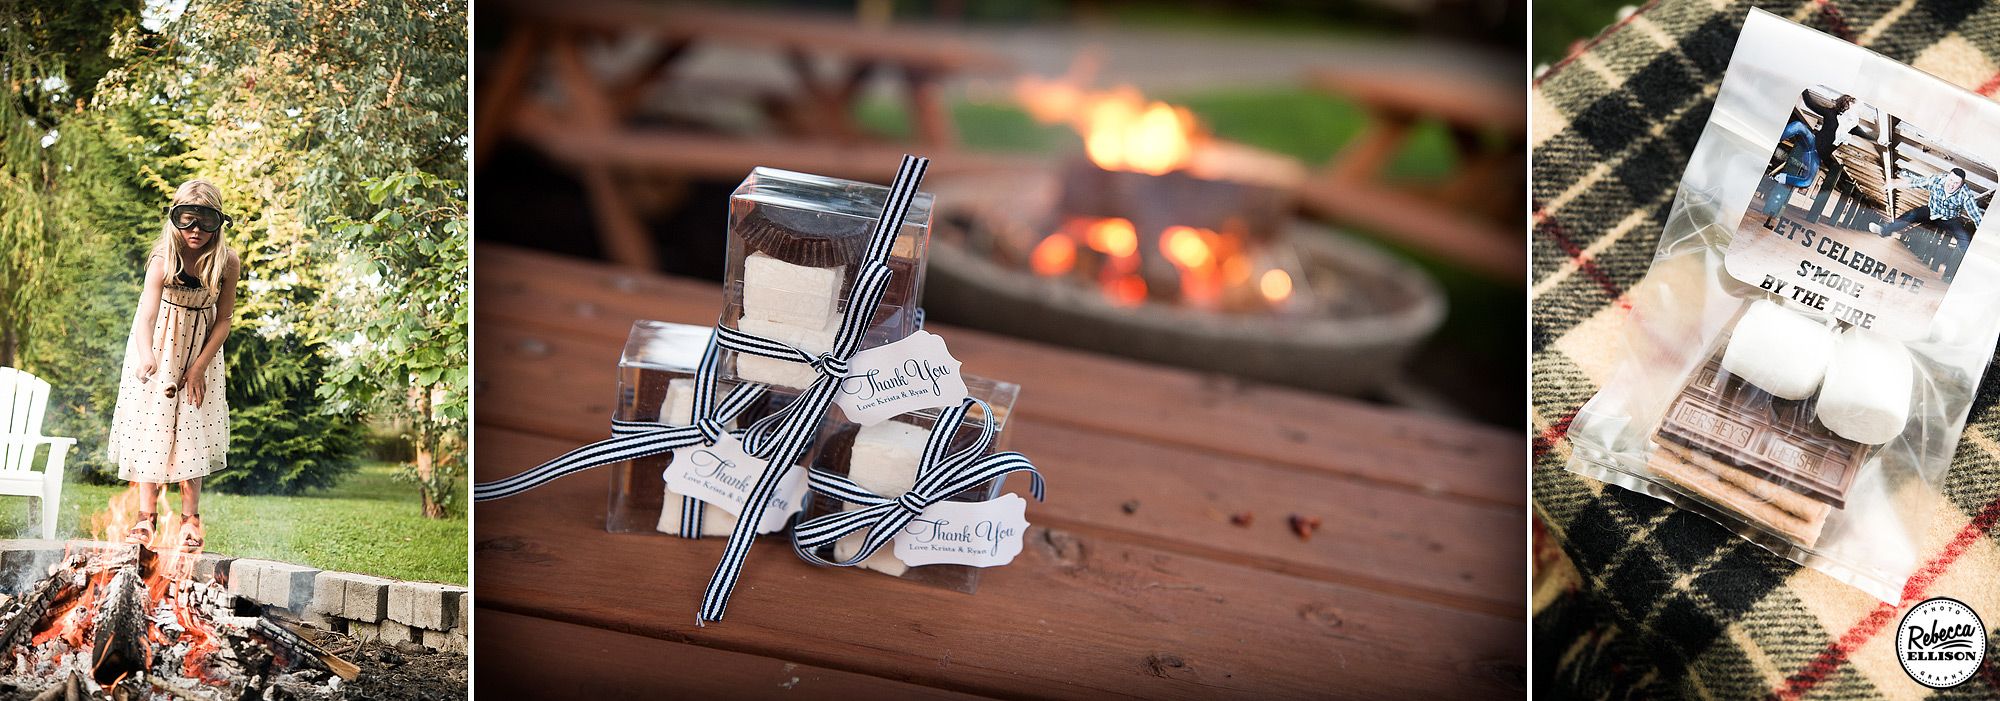 wedding-favors-for-guests-002